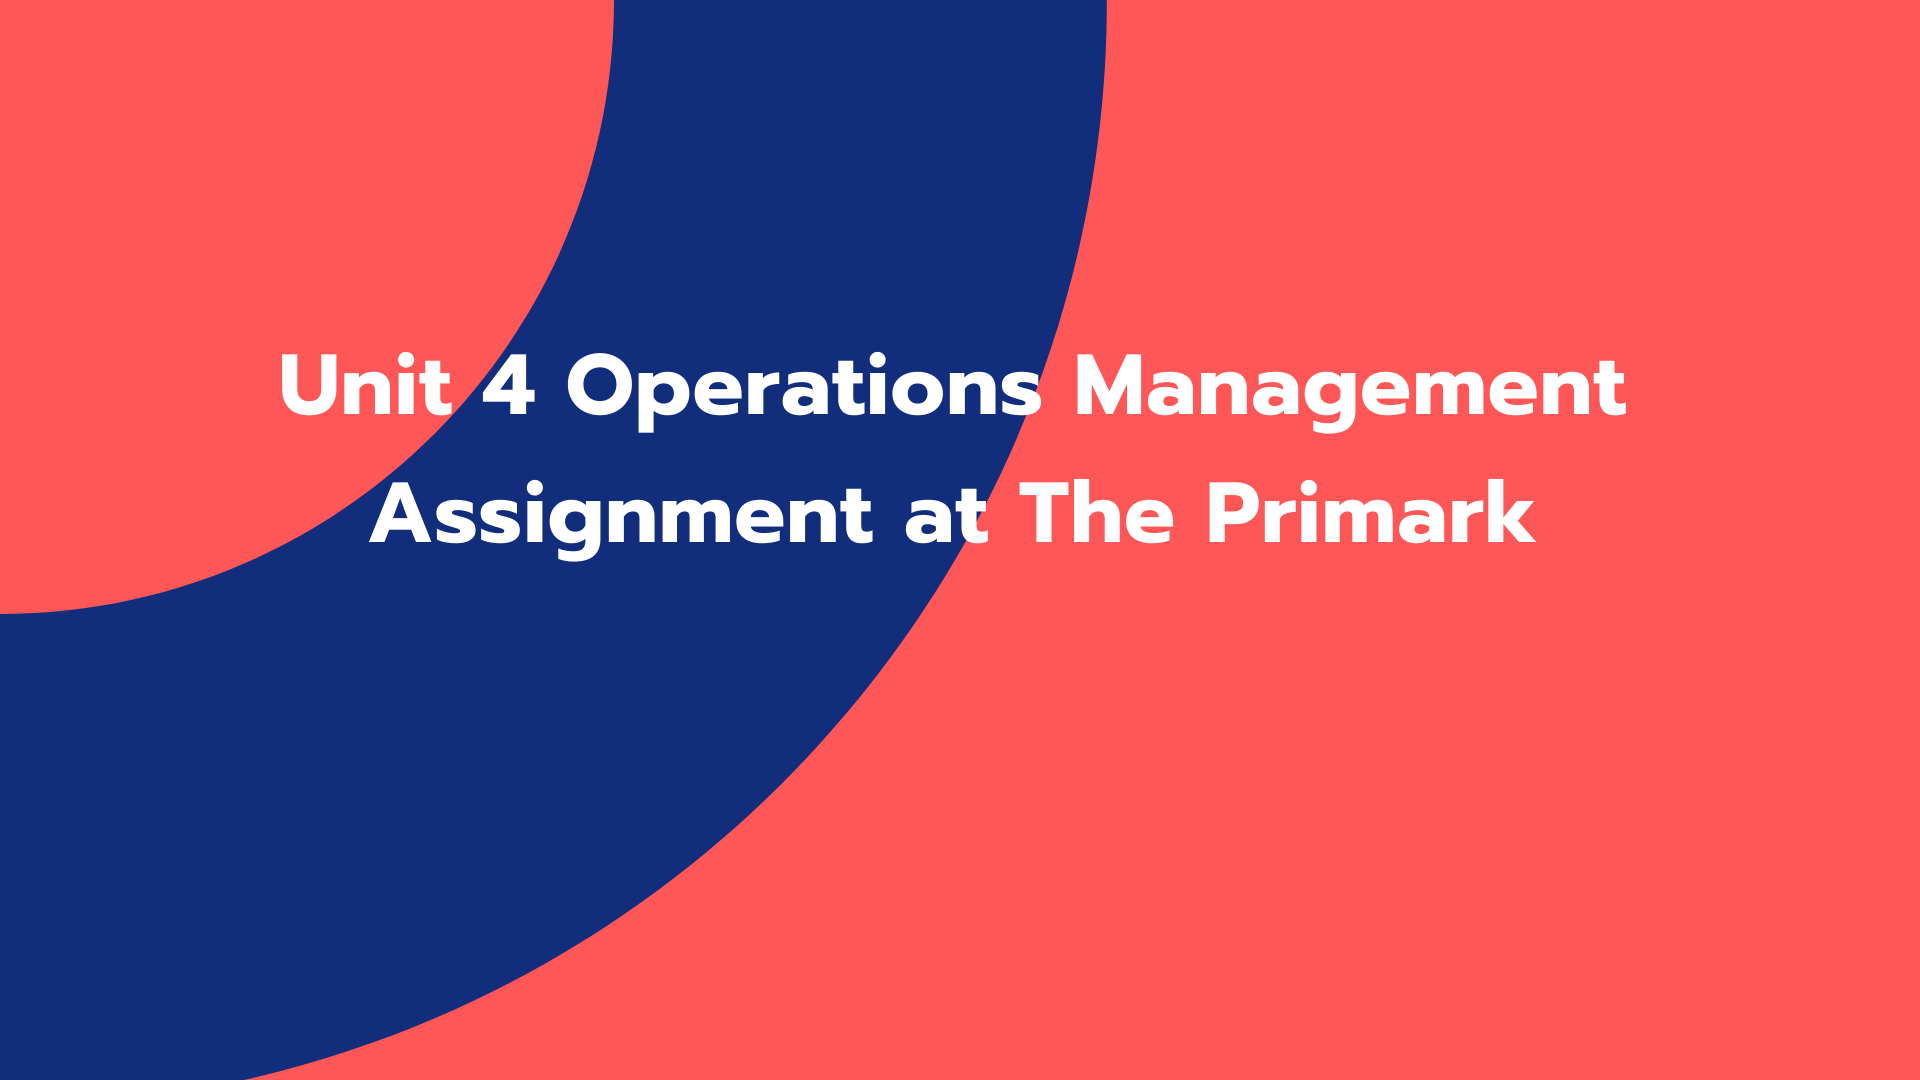 Unit 4 Operations Management Assignment at The Primark